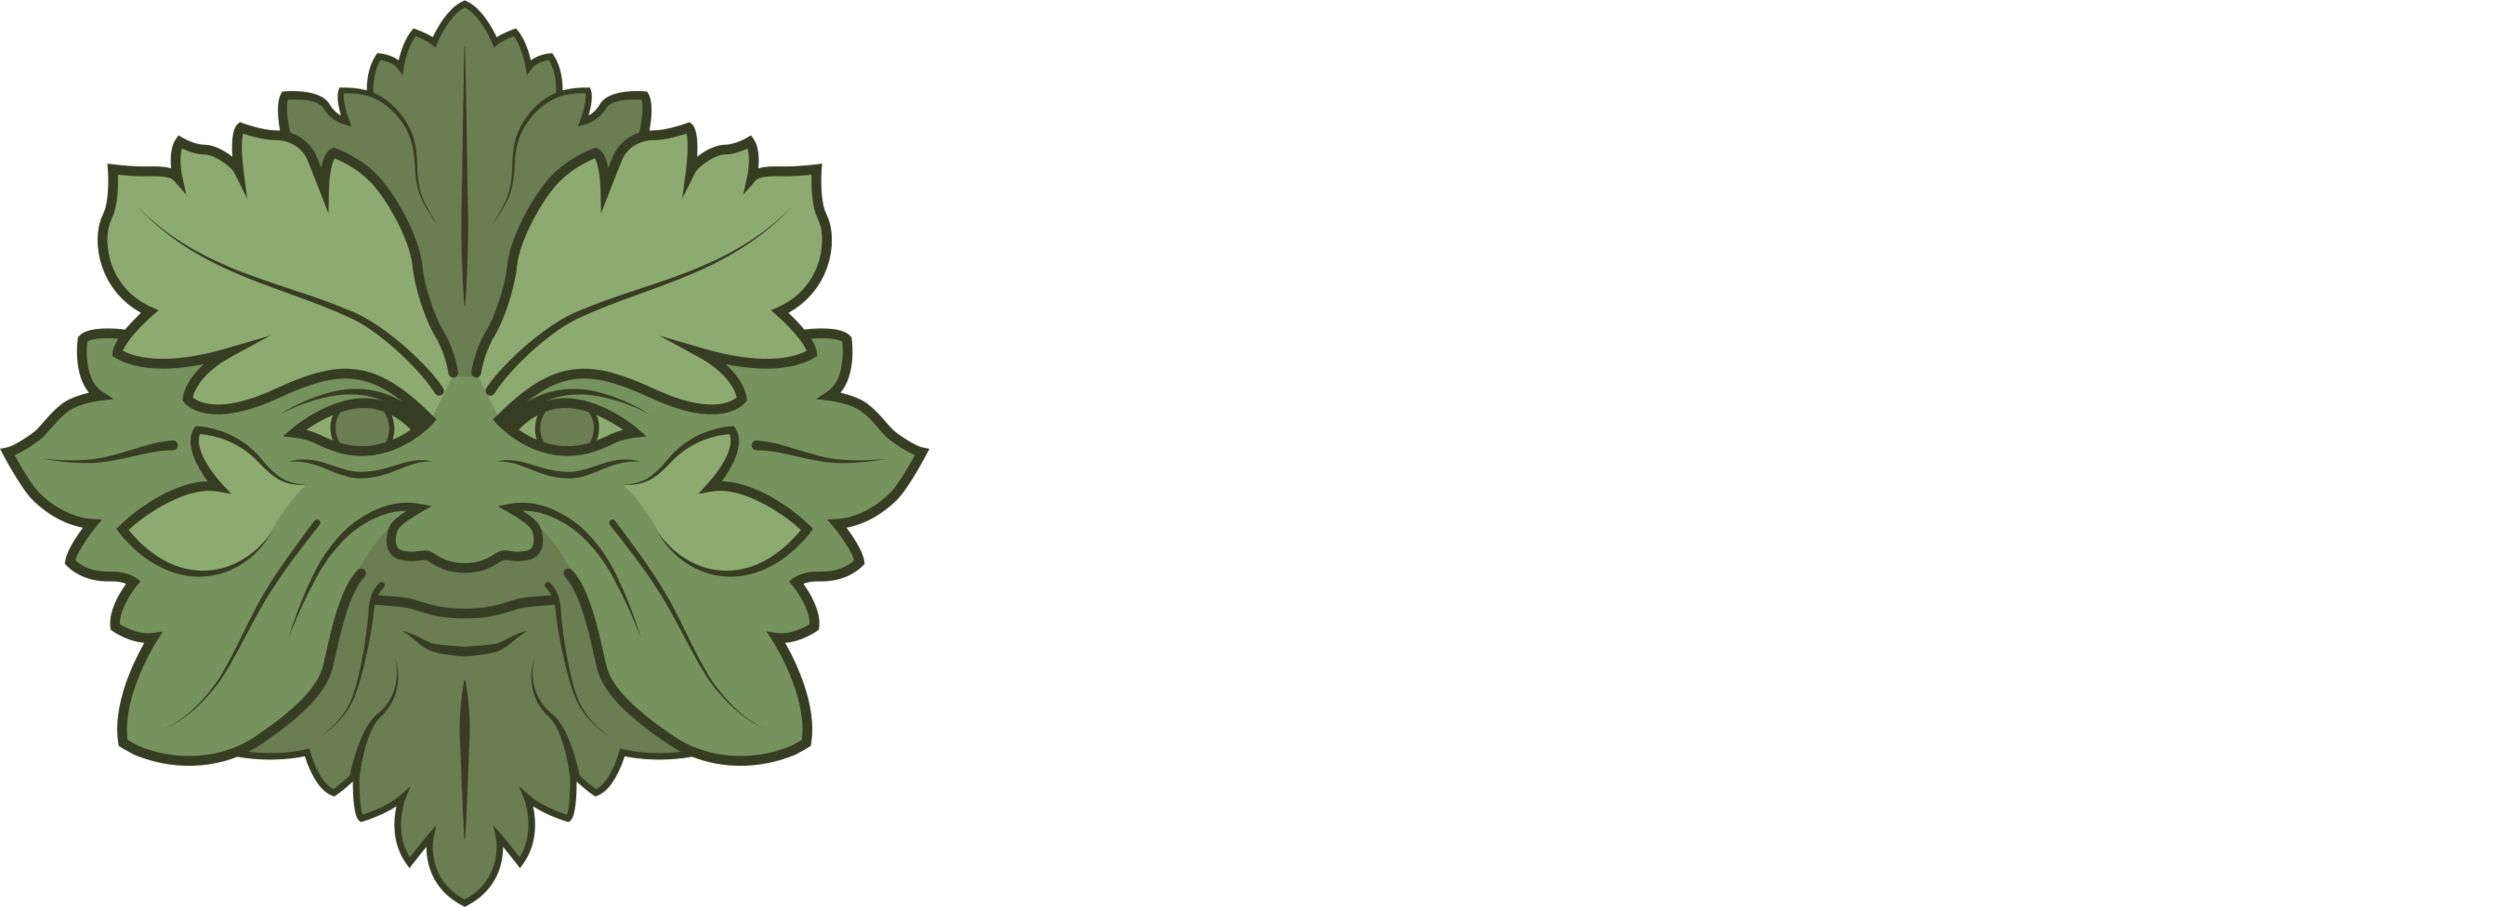 The Akeman Inn, Kingswood | Pub, Restaurant